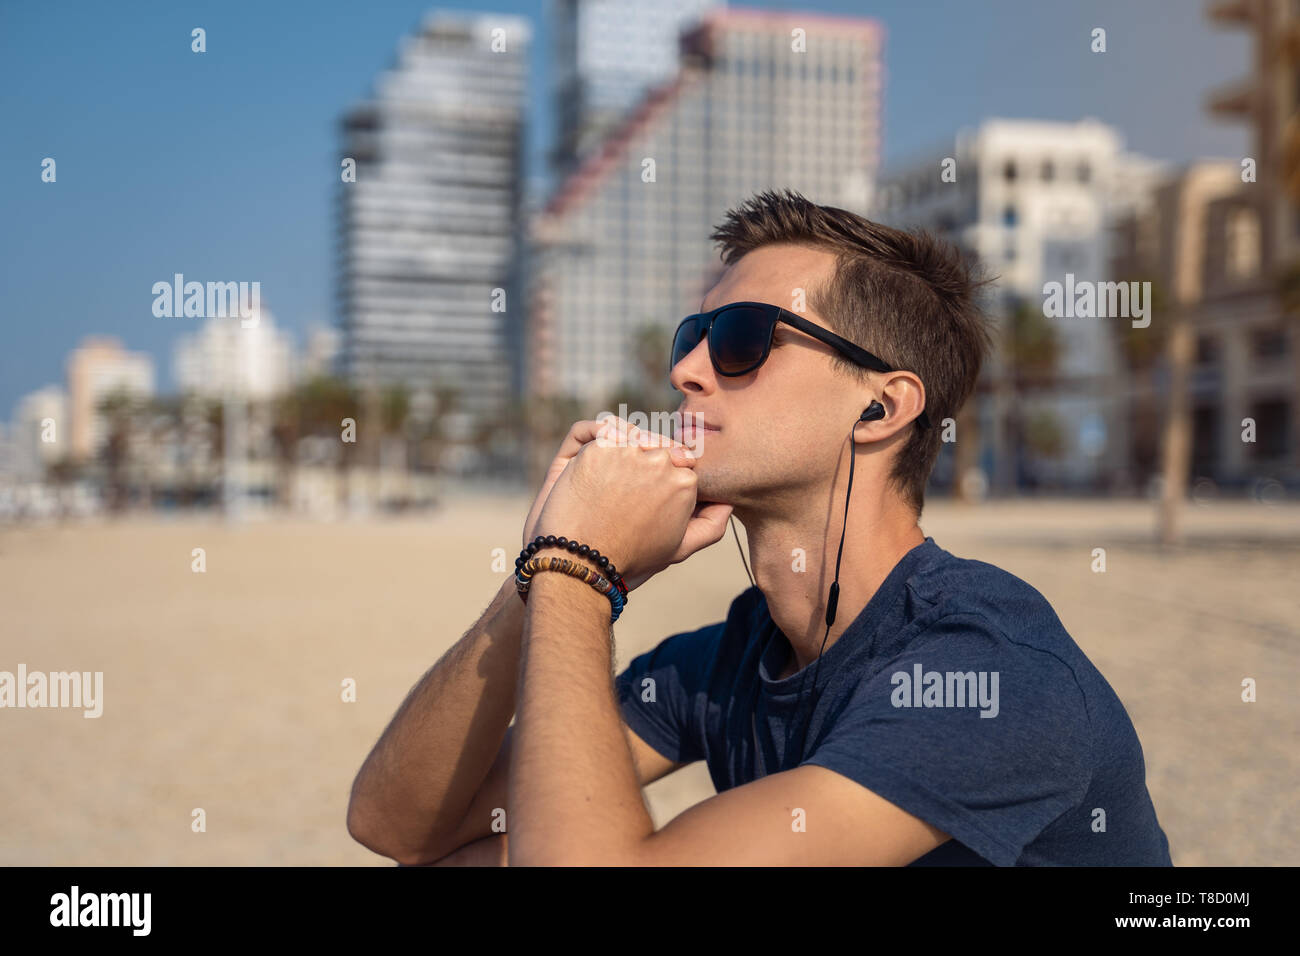 Man seated on the beach contemplating the panorama while listening to music with earbuds - Stock Image